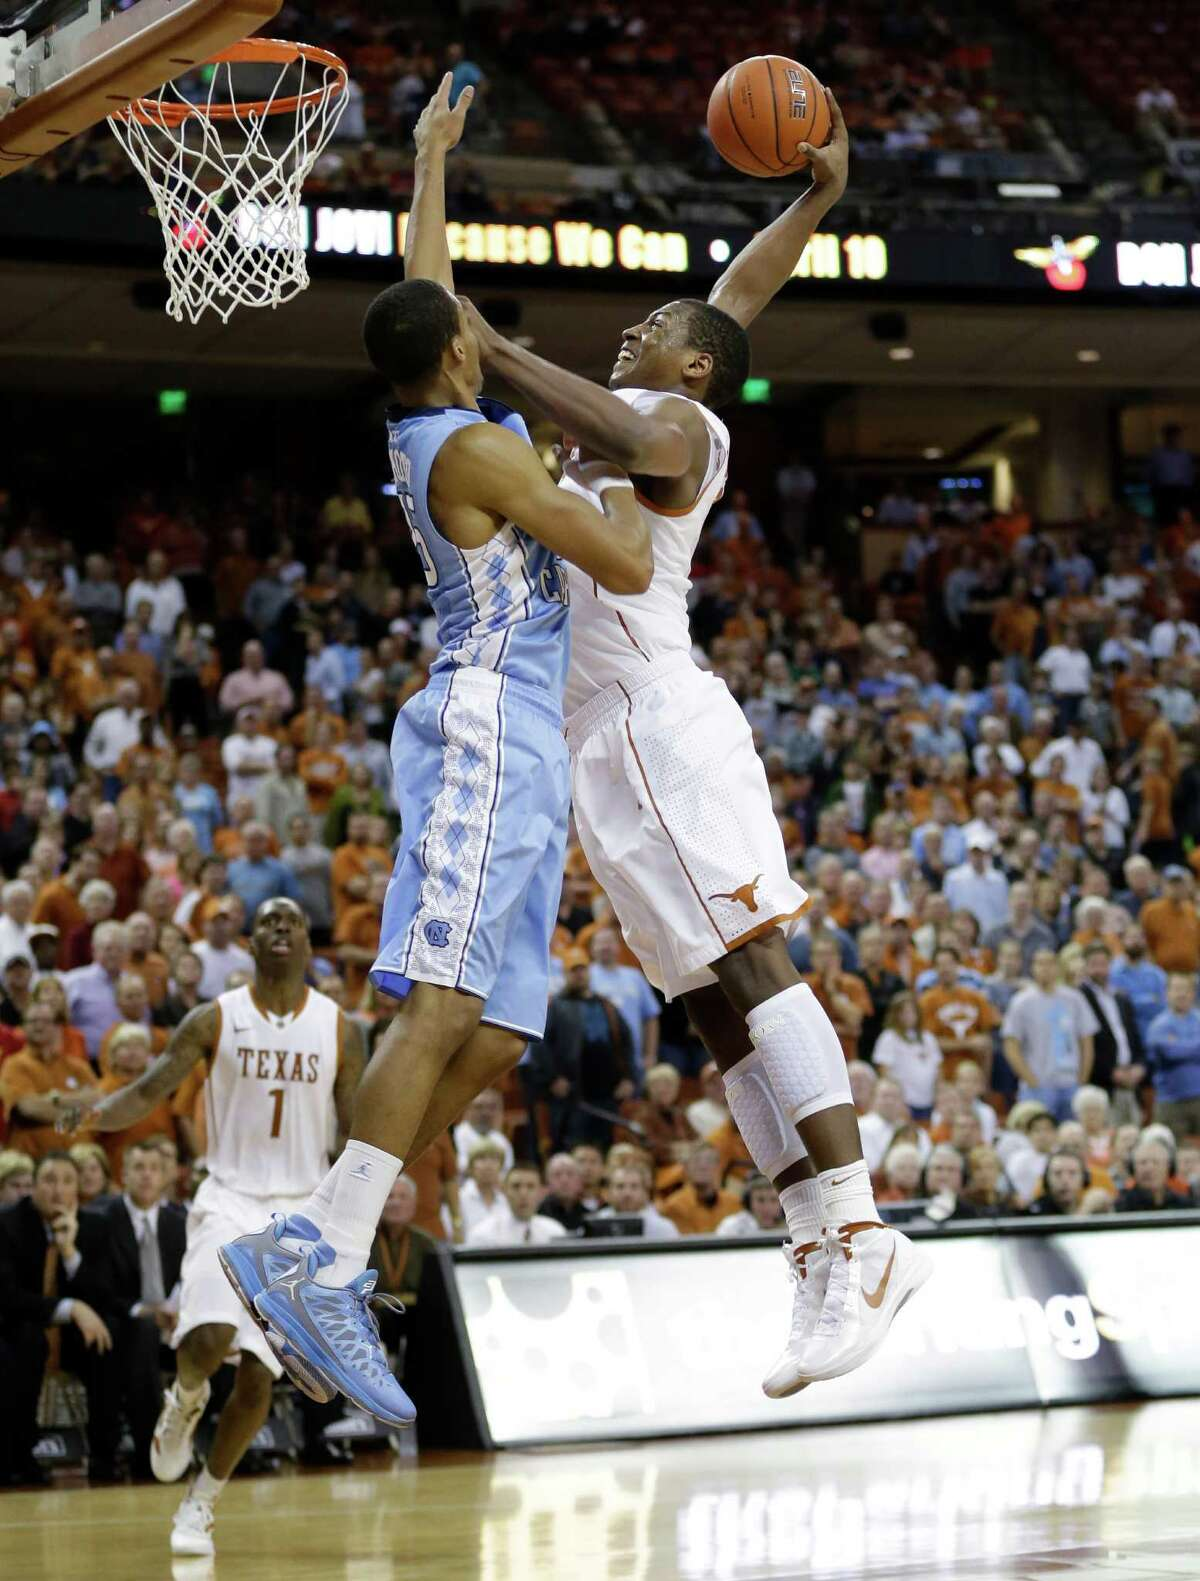 Texas' Jonathan Holmes, right, scores over North Carolina's J.P. Tokoto, left, during the second half of an NCAA college basketball game on Wednesday, Dec. 19, 2012, in Austin, Texas. Texas won 85-67. (AP Photo/Eric Gay)